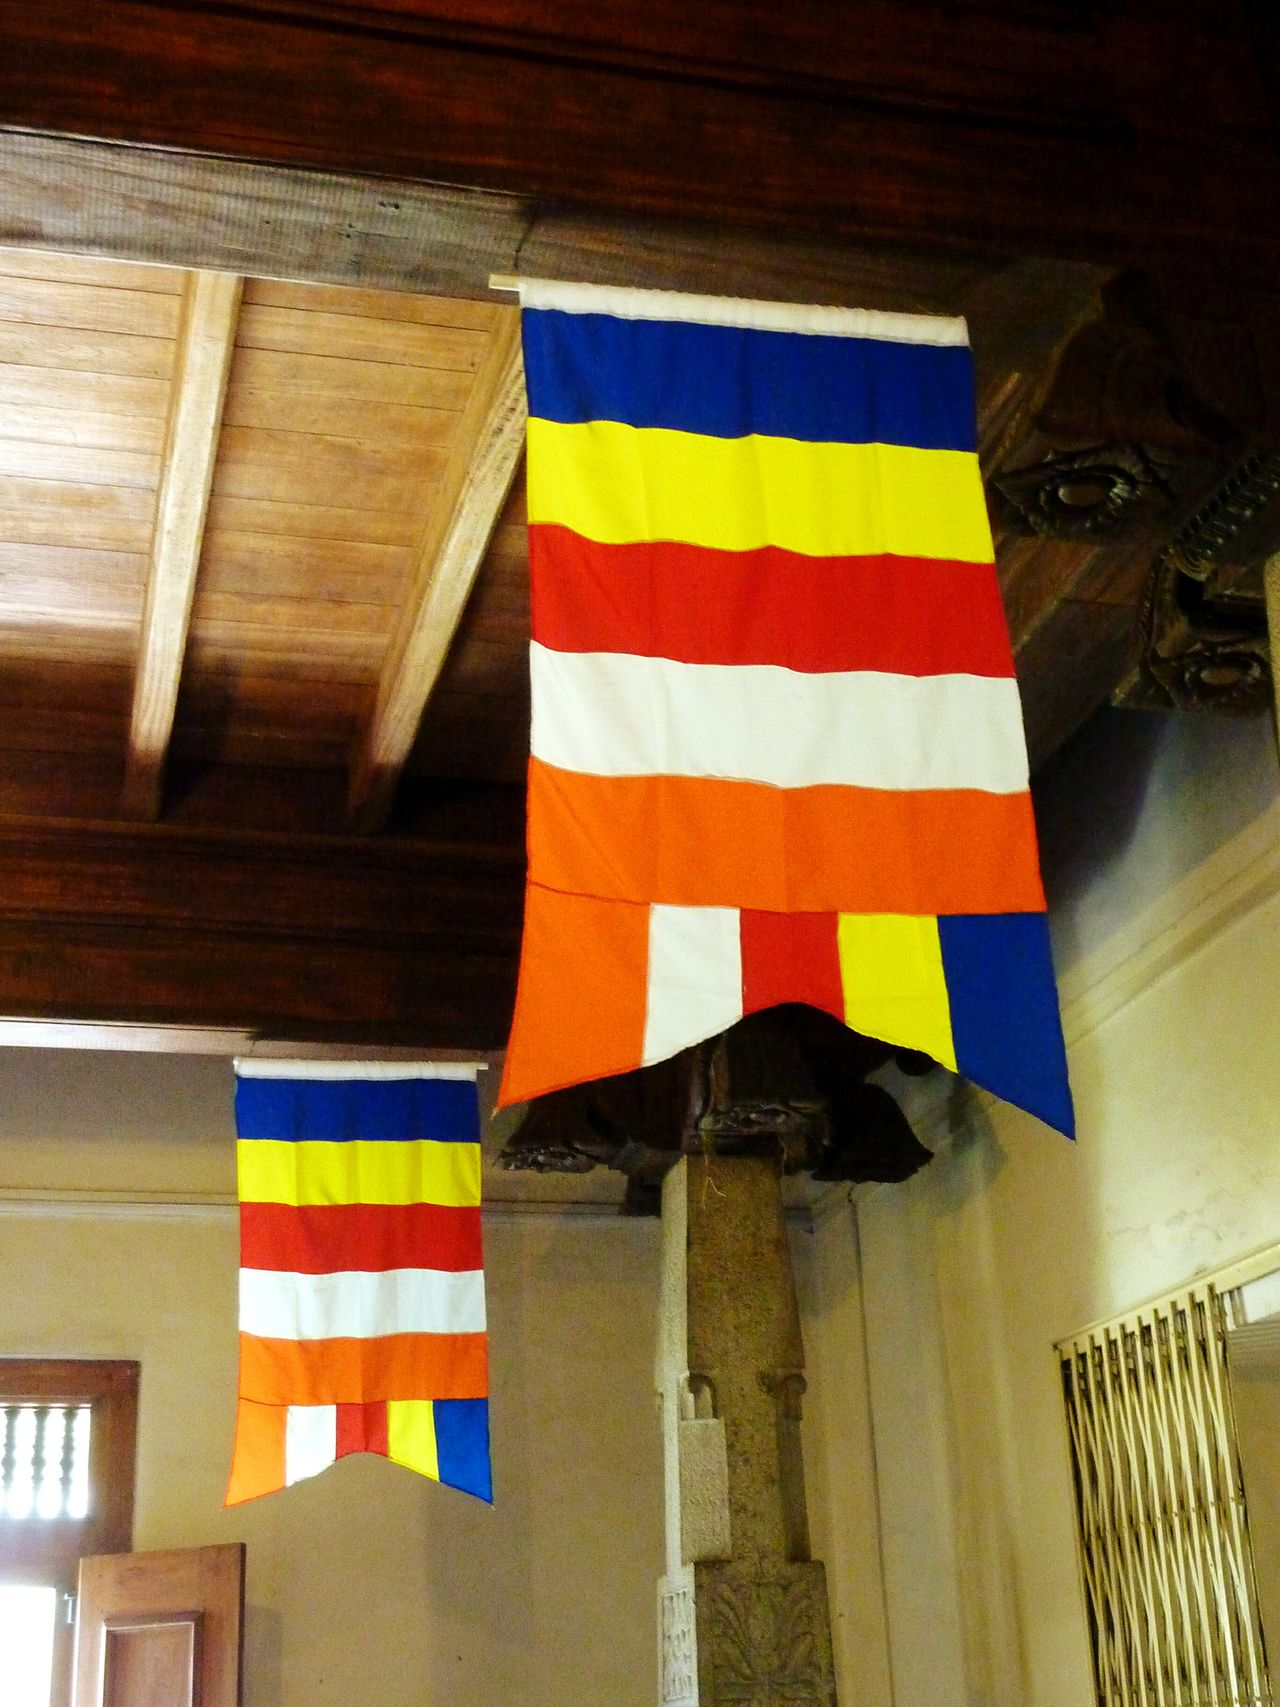 Multi Colored Symbolism No People Sri Lanka Toothtemple Buddhist Temple Buddhist Flag